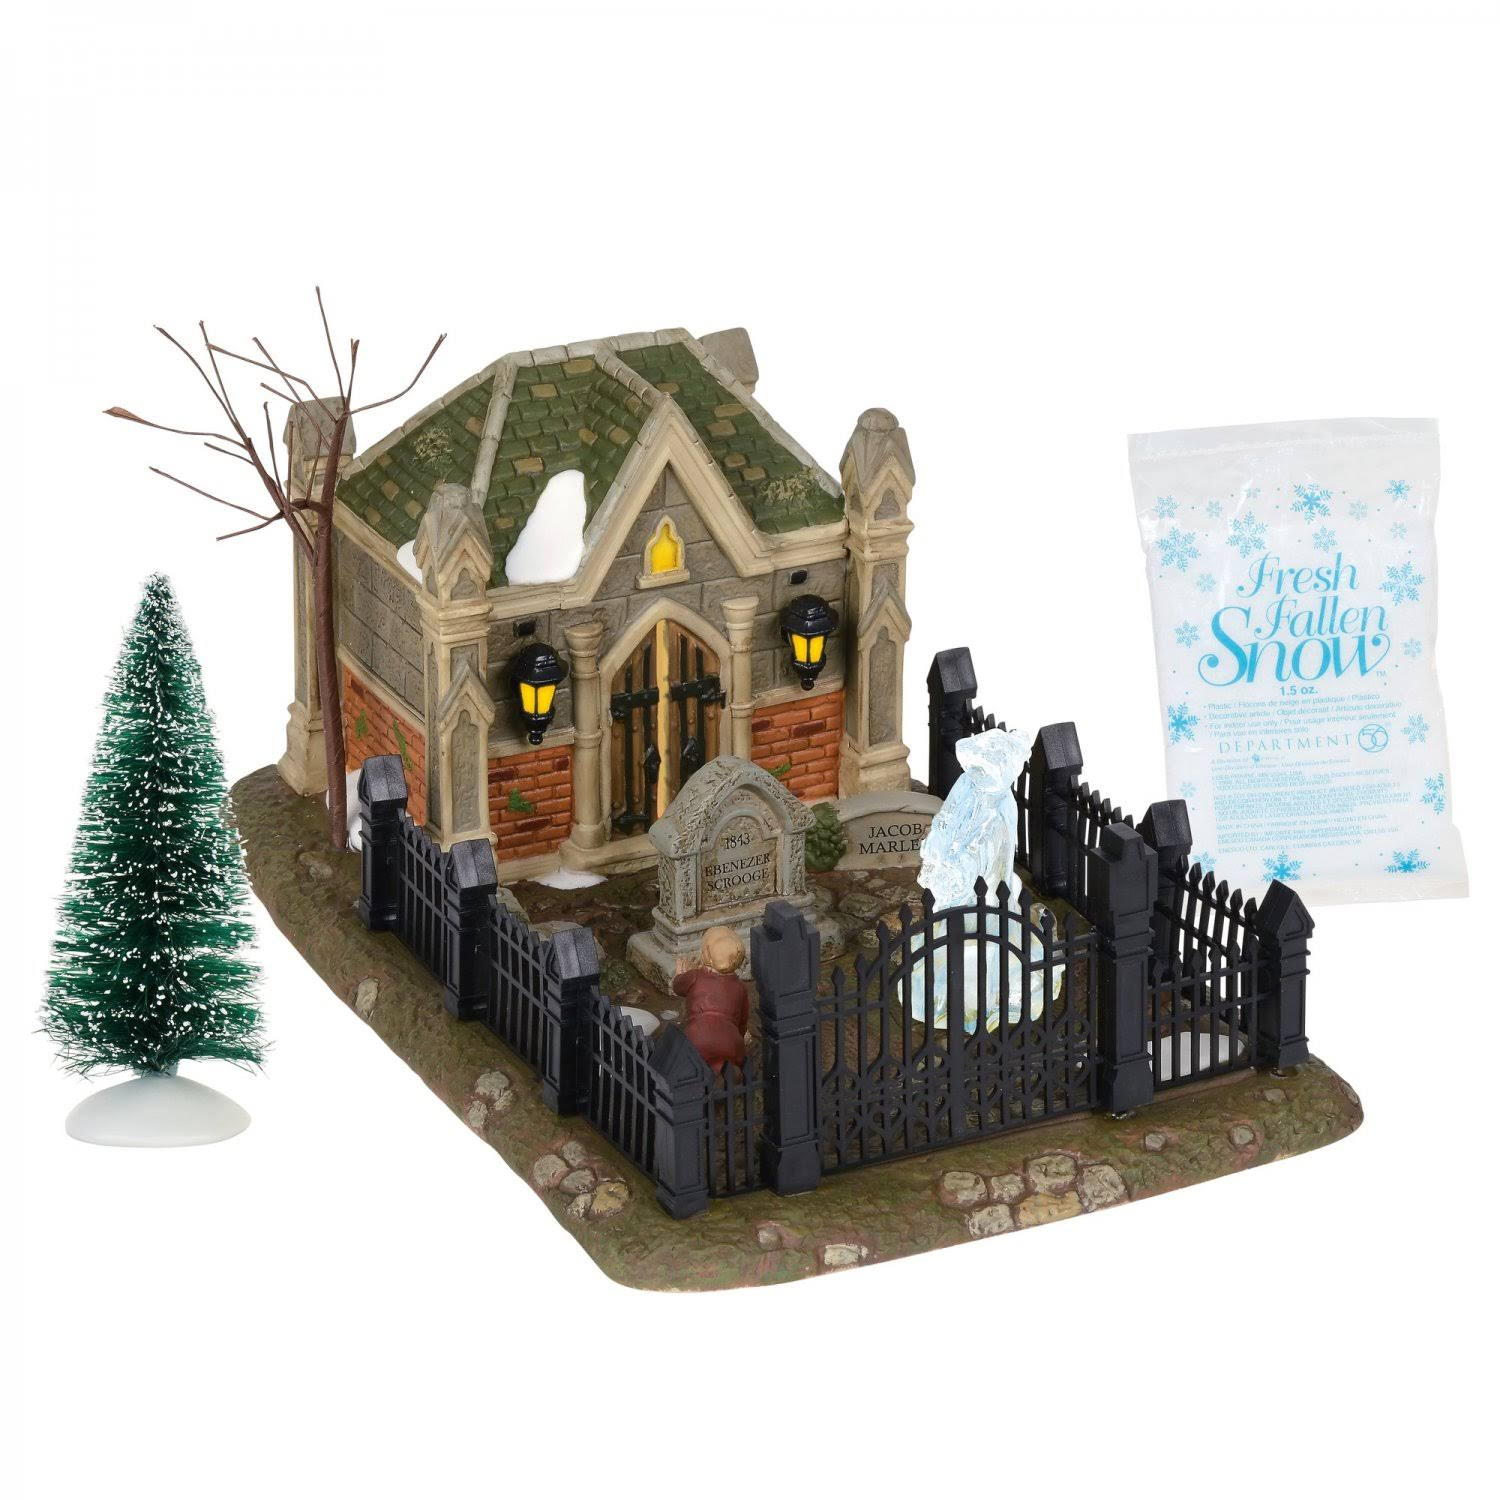 Department 56 Dickens 6000601 Christmas Carol Cemetery Set - 9.75""